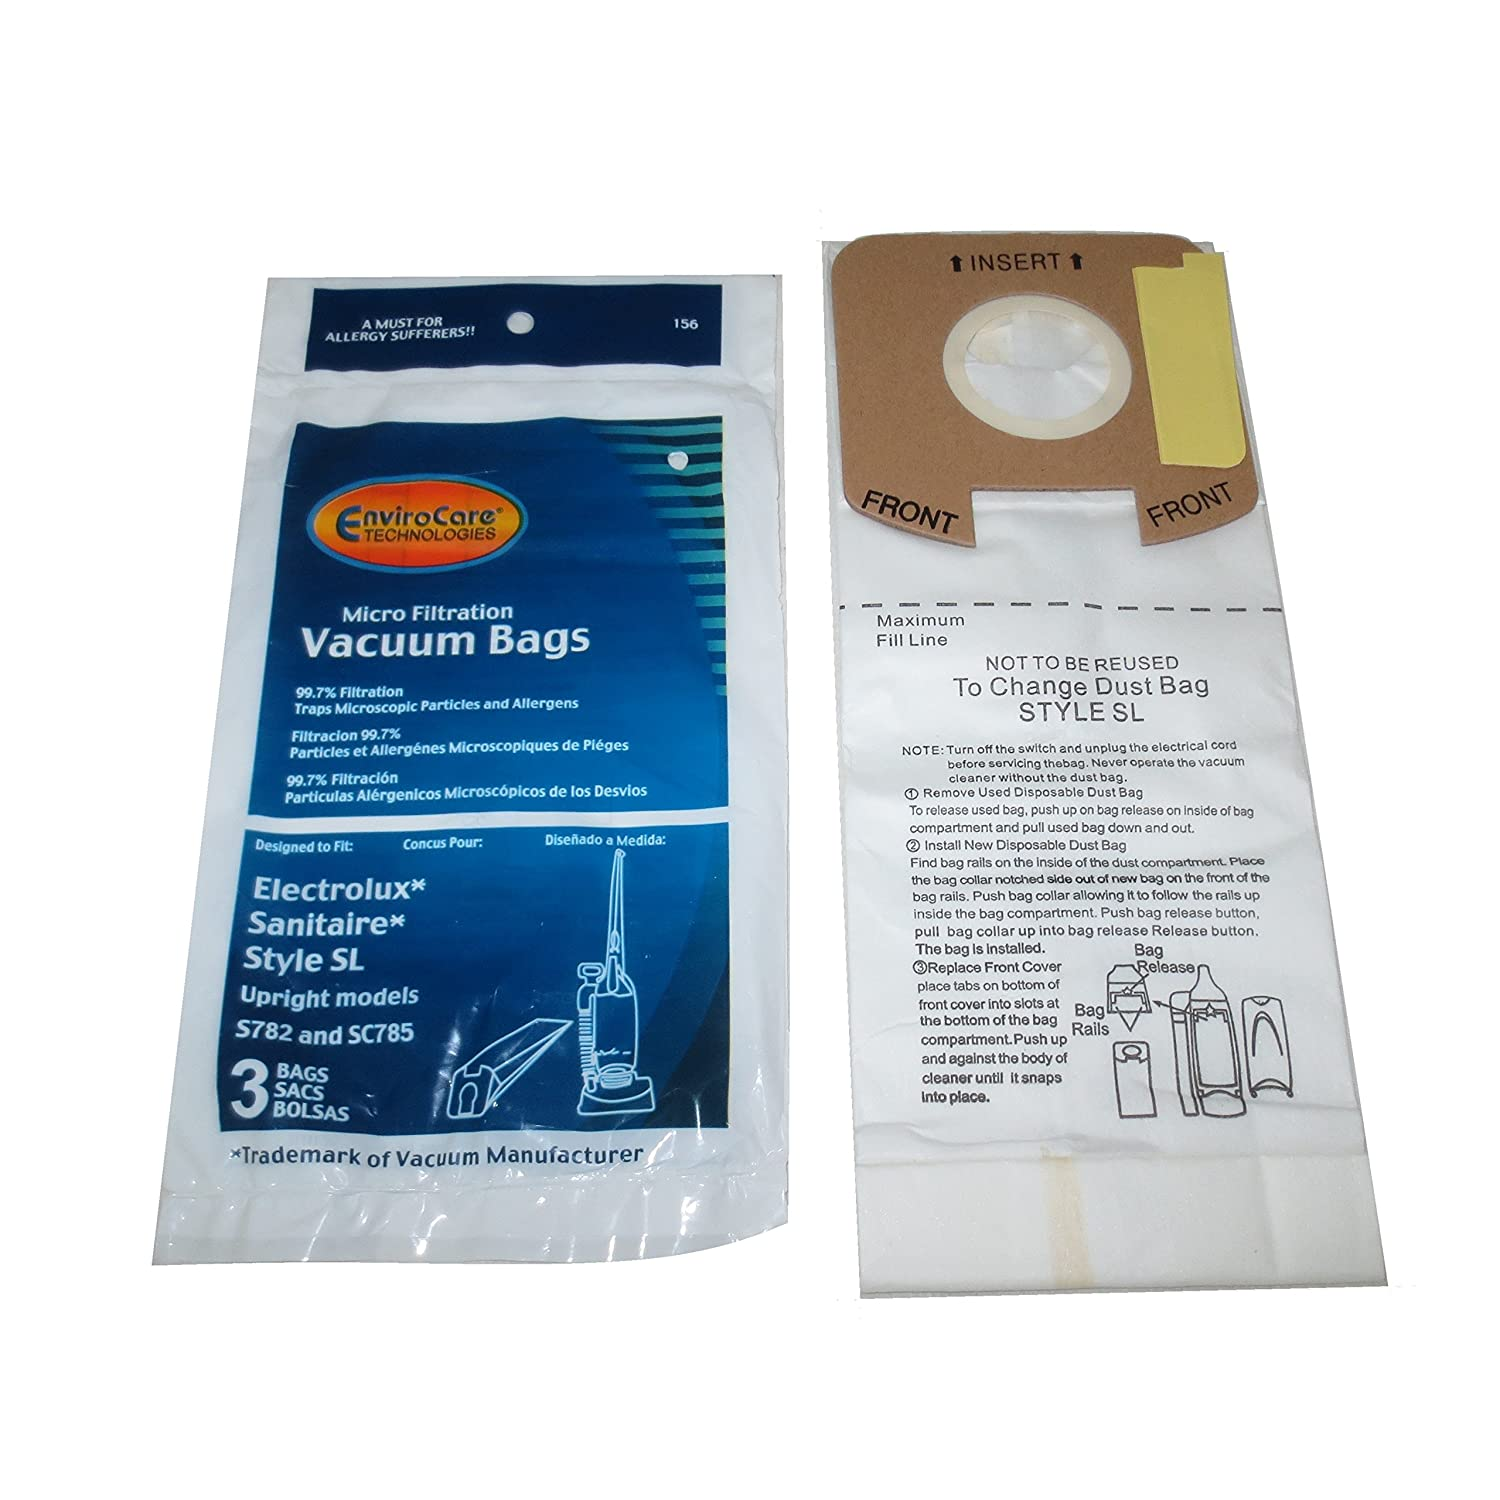 EnviroCare Replacement Micro Filtration Vacuum Bags for Eureka Electrolux Sanitaire Style SL Upright Models S782 and SC785 6 Pack